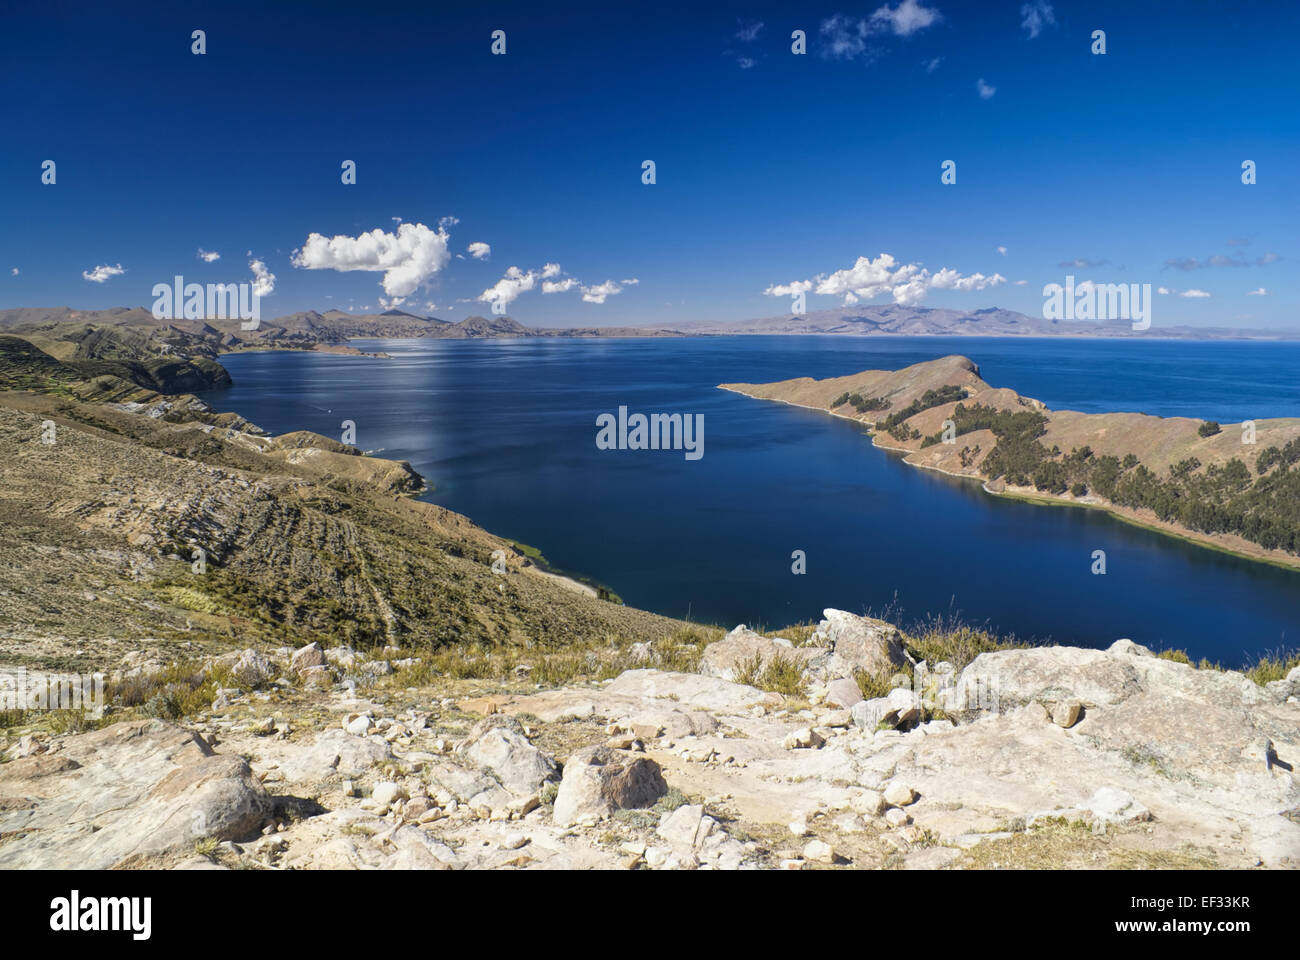 Picturesque view of Isla del Sol, island on lake Titicaca in Bolivia - Stock Image